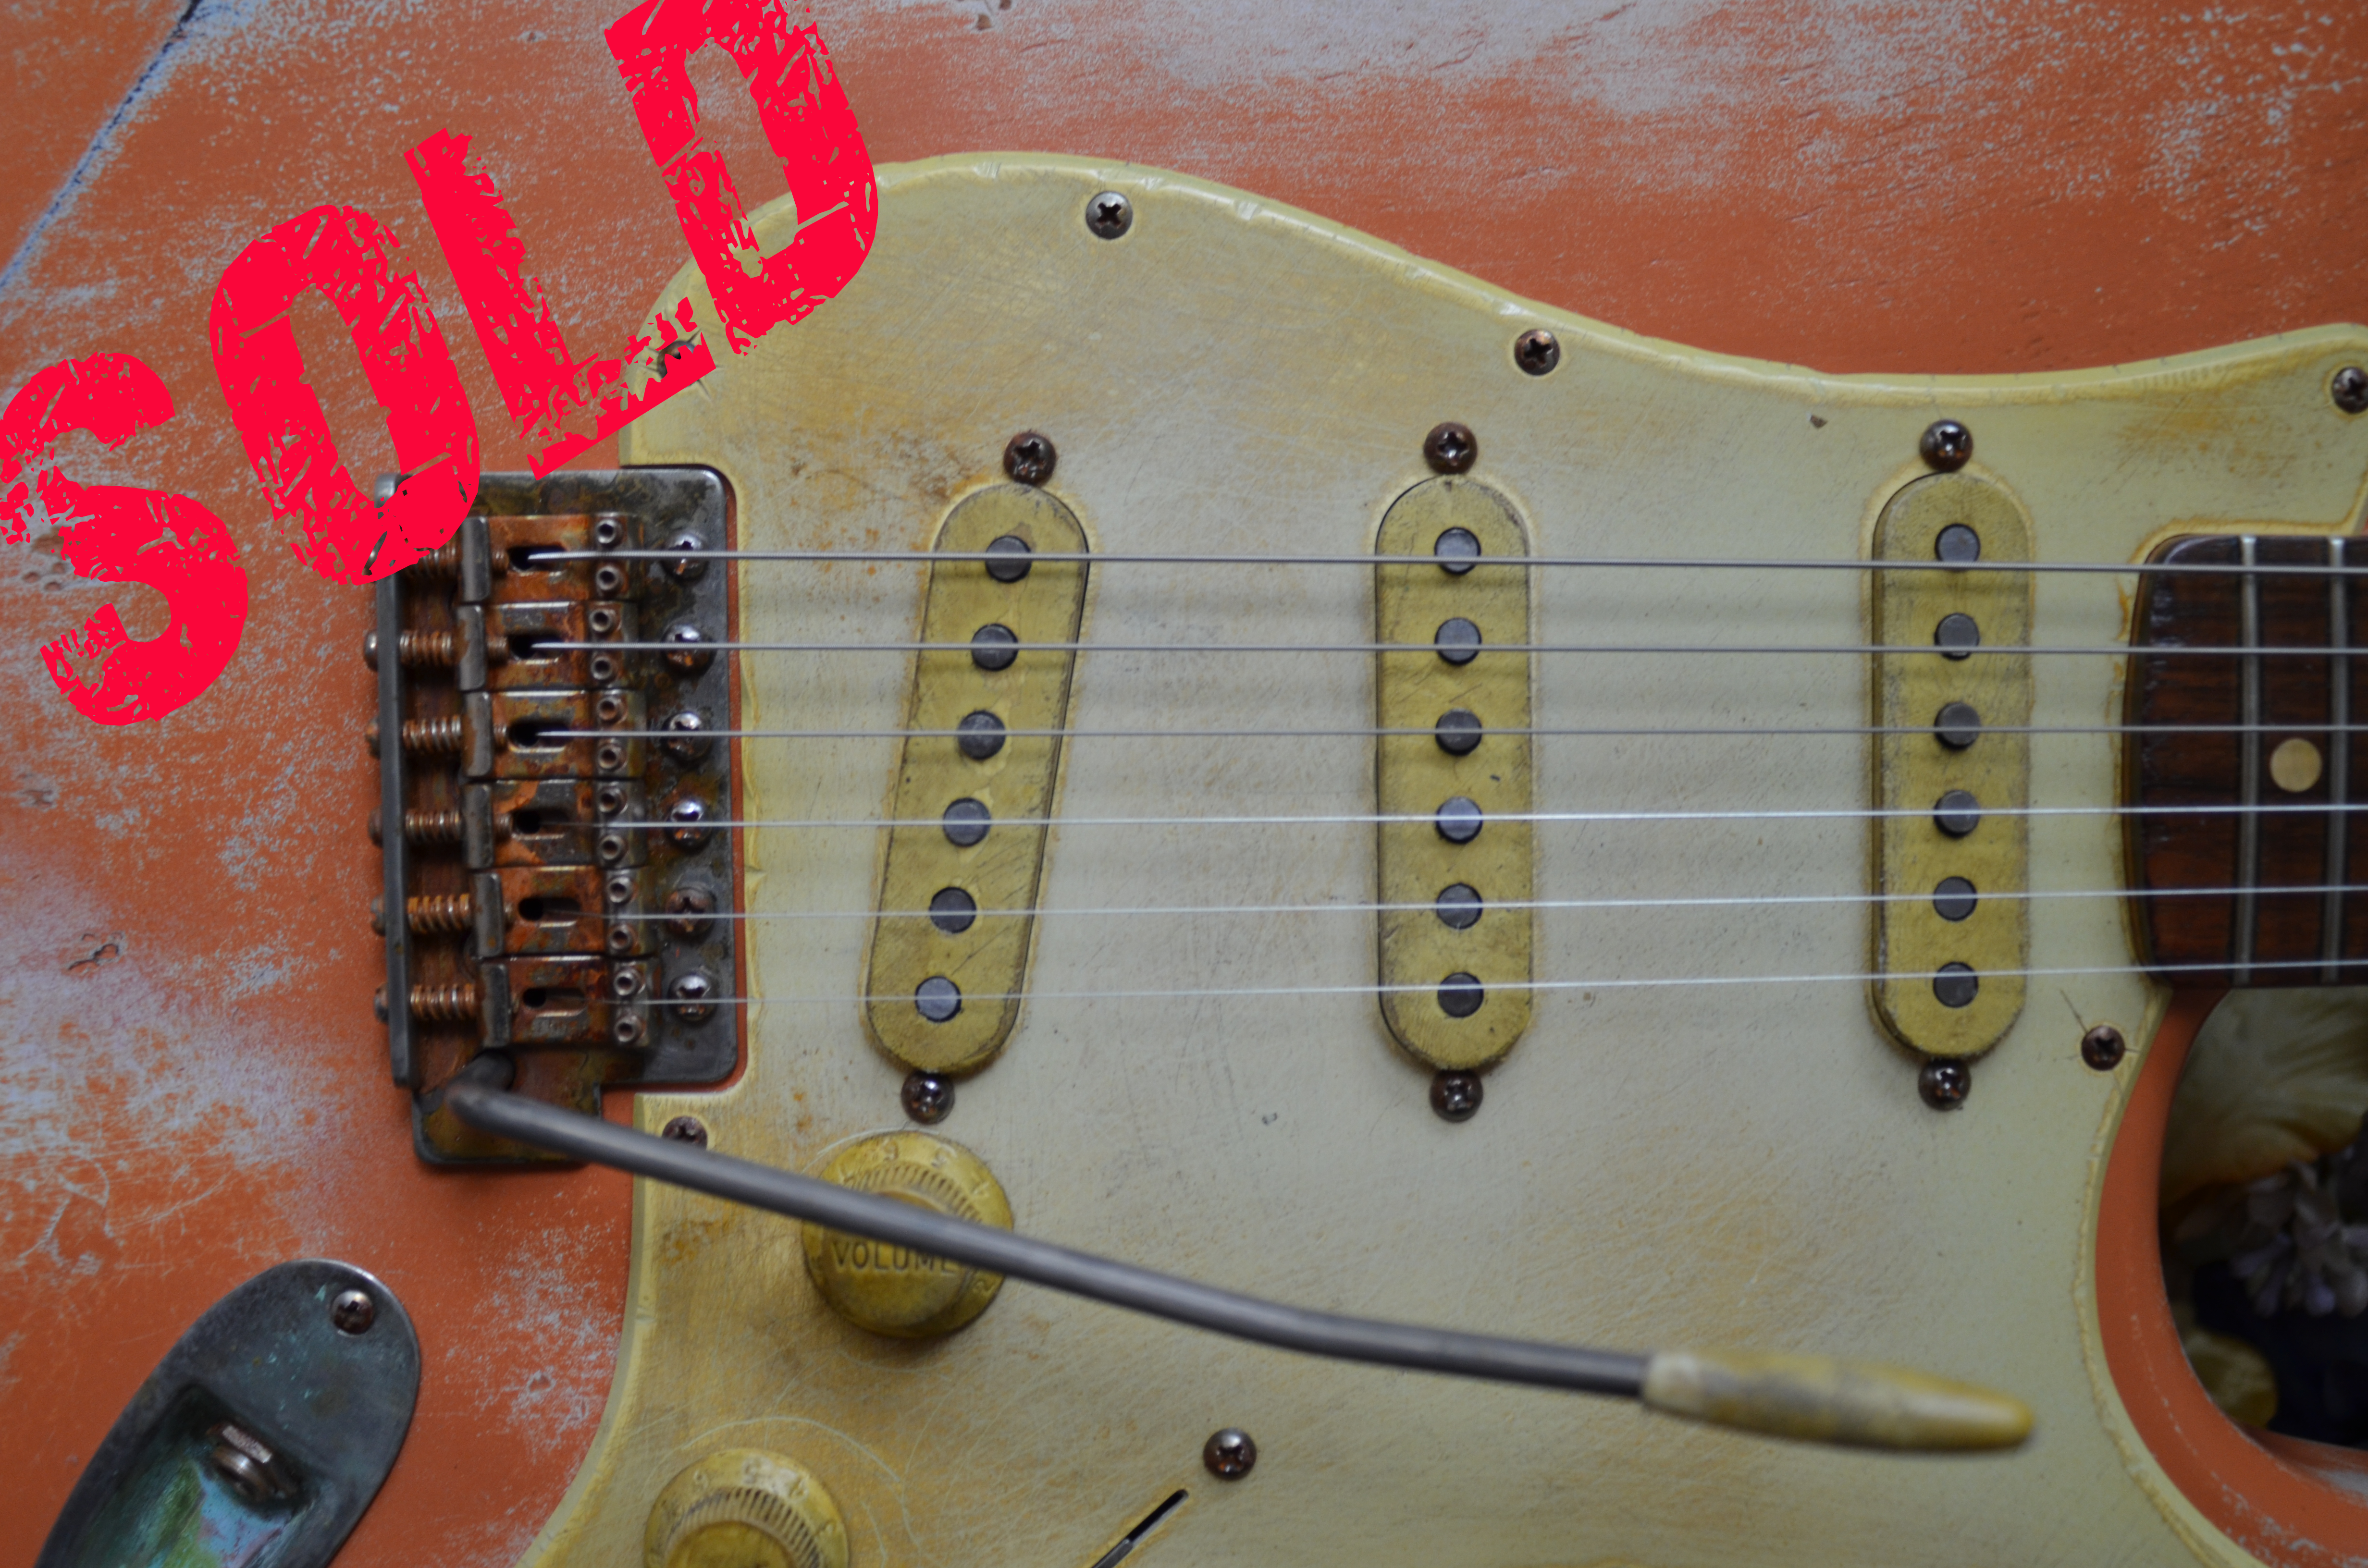 Fender Stratocaster Coral Relic Sold Guitarwacky.com